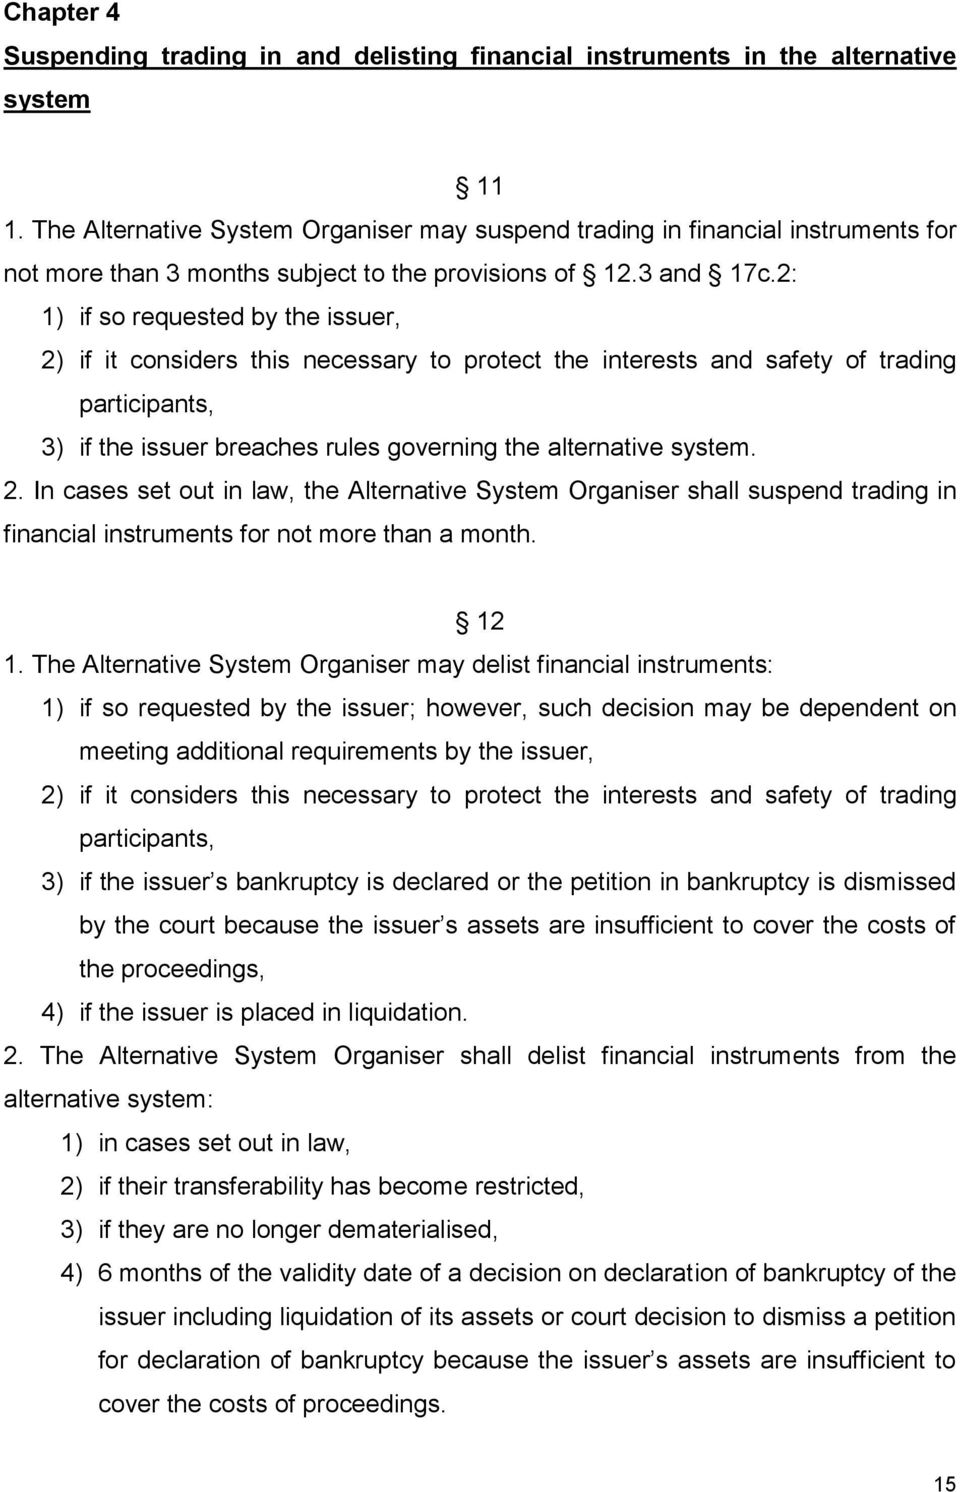 2: 1) if so requested by the issuer, 2) if it considers this necessary to protect the interests and safety of trading participants, 3) if the issuer breaches rules governing the alternative system. 2. In cases set out in law, the Alternative System Organiser shall suspend trading in financial instruments for not more than a month.